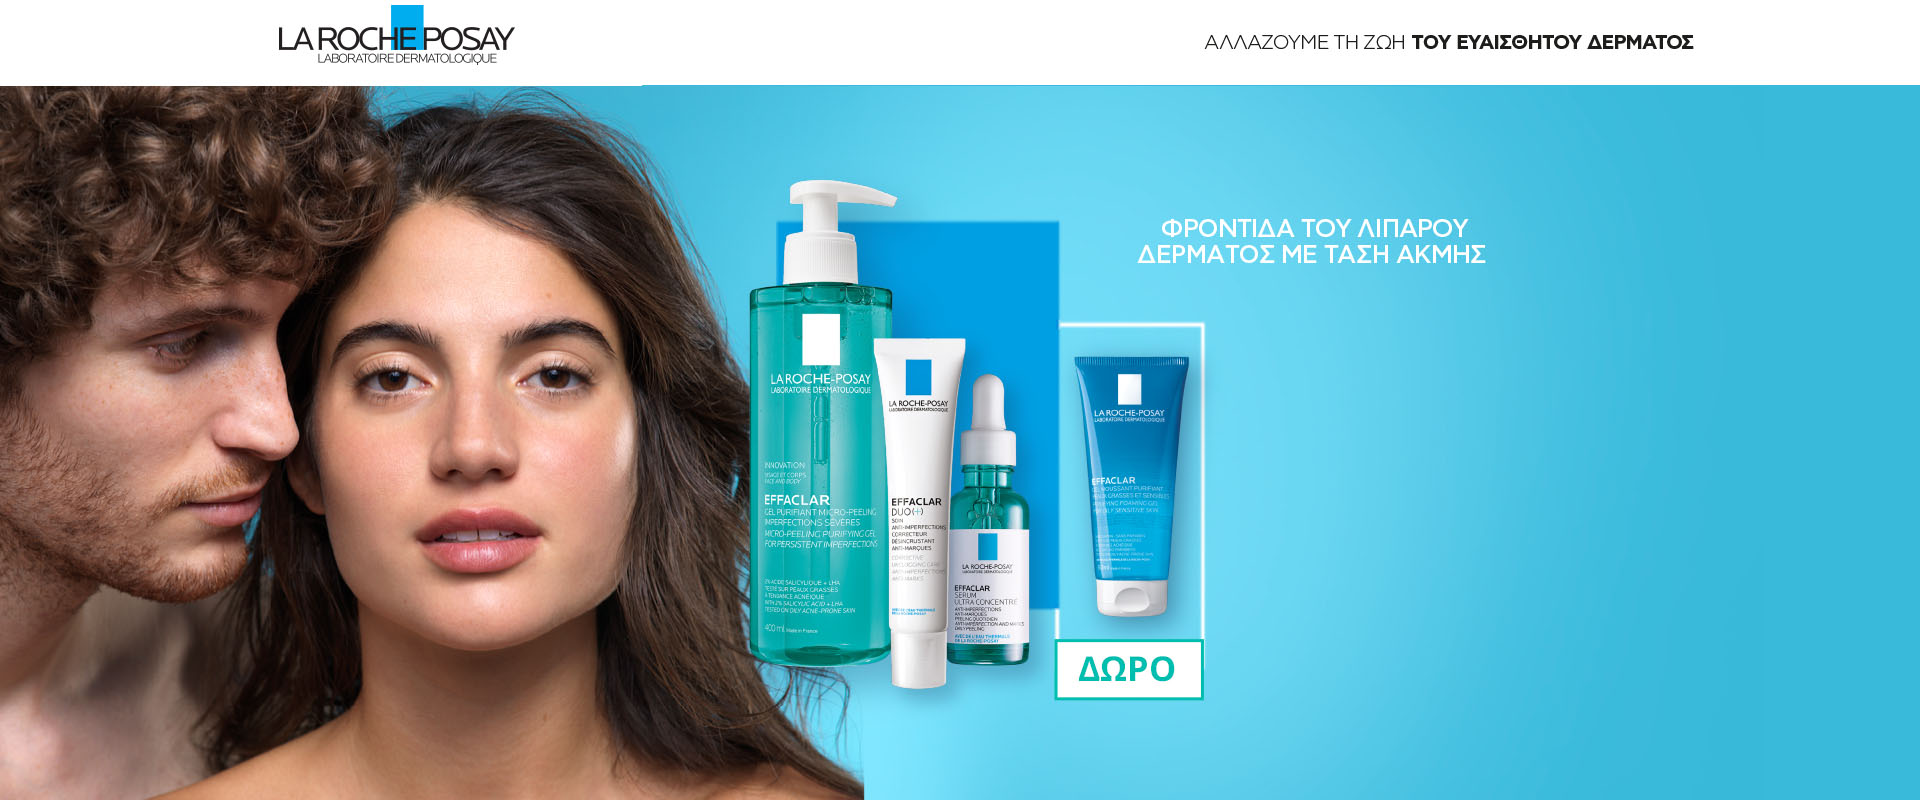 WITH ANY PRODUCT LA ROCHE POSAY EFFACLAR